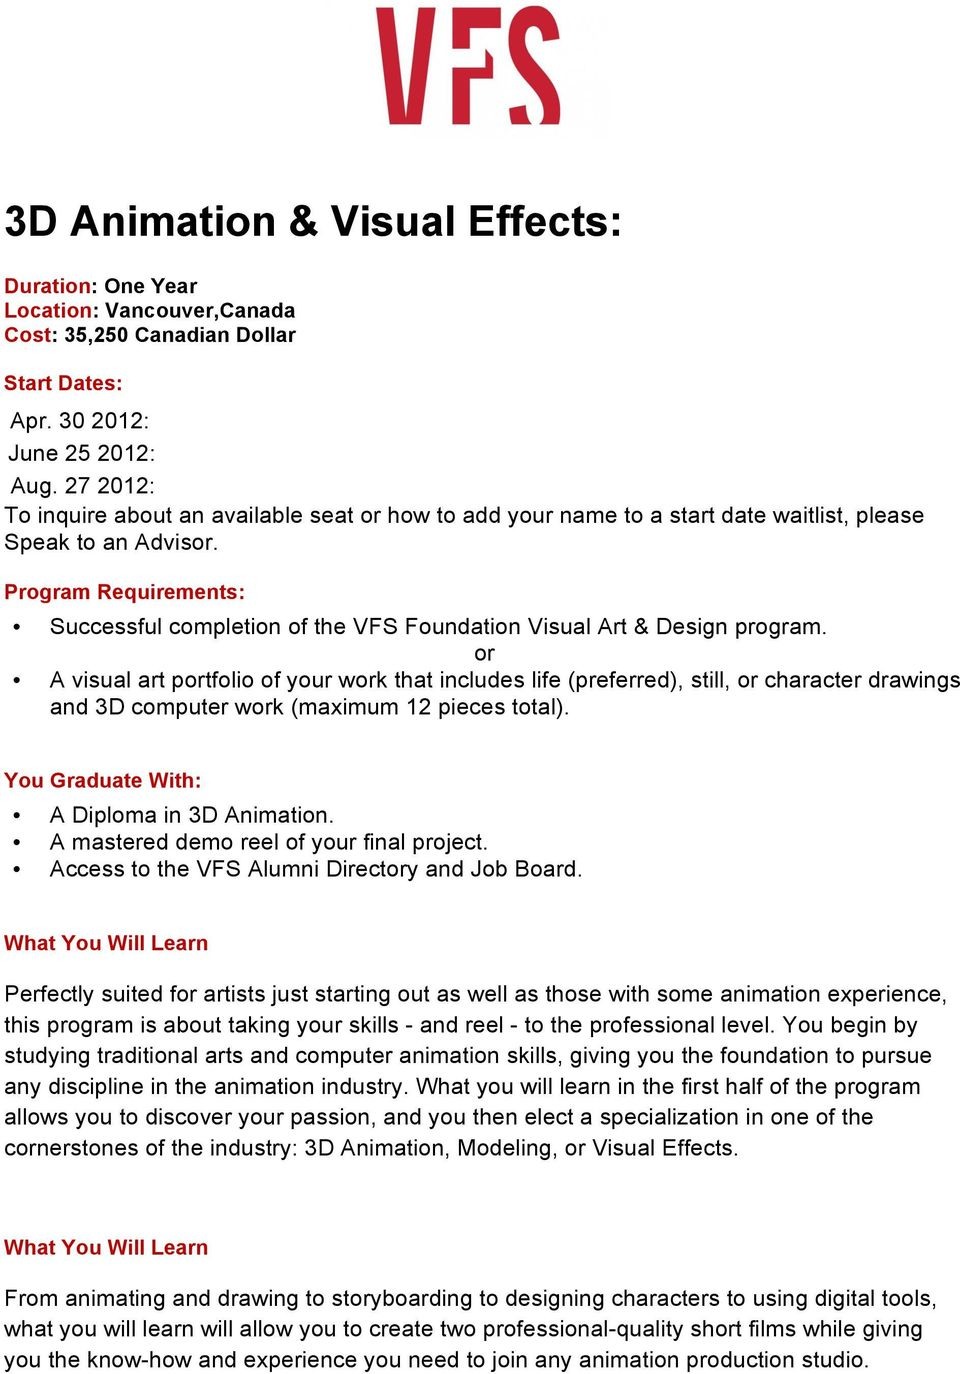 A visual art ptfolio of your wk that includes life (preferred), still, character drawings and 3D computer wk (maximum 12 pieces total). A Diploma in 3D Animation.